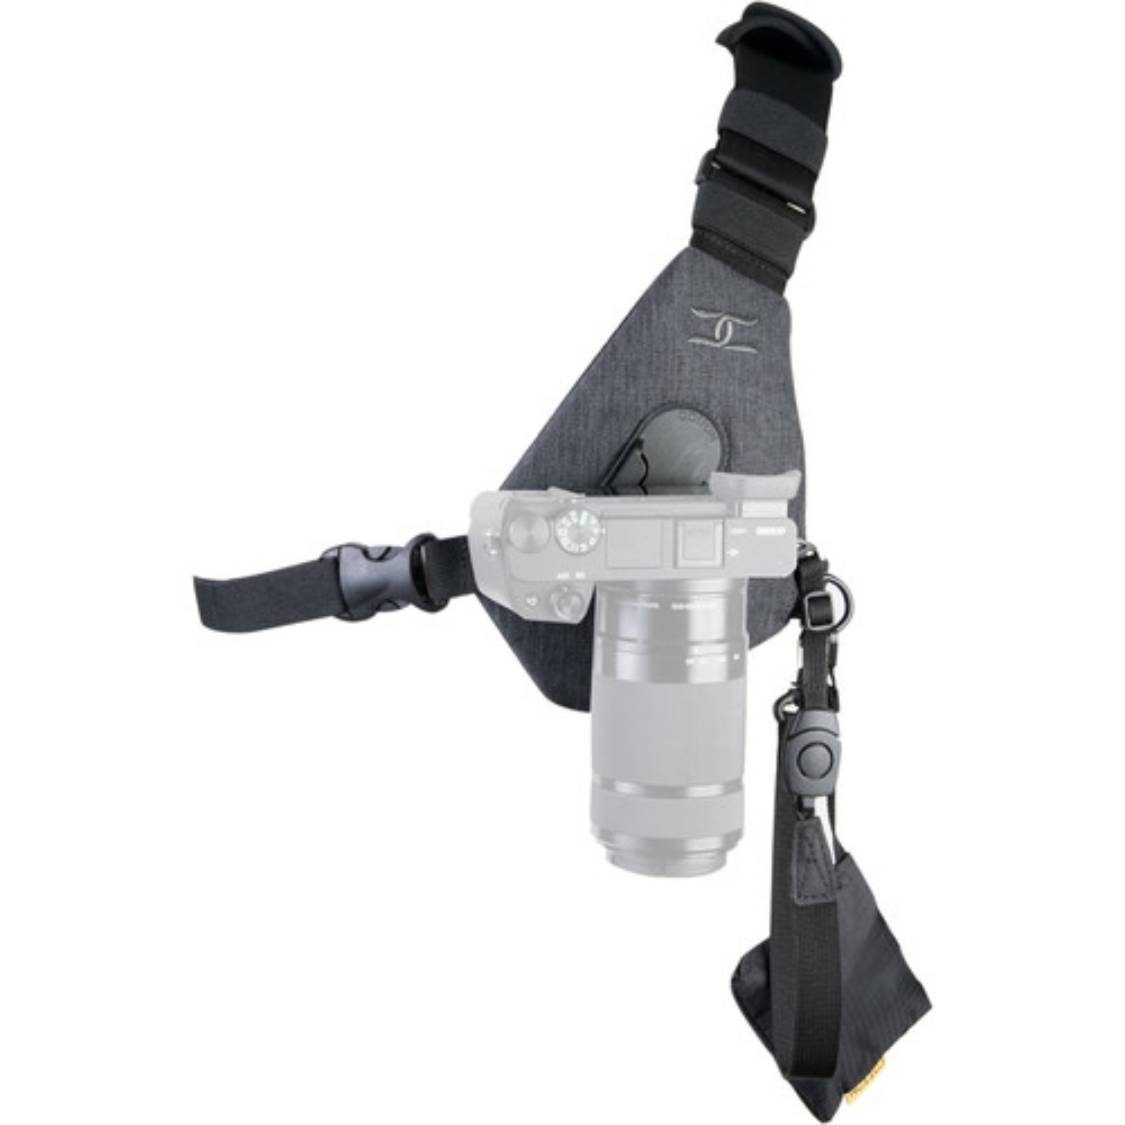 Cotton Carrier Scout Camera Sling Style Harness